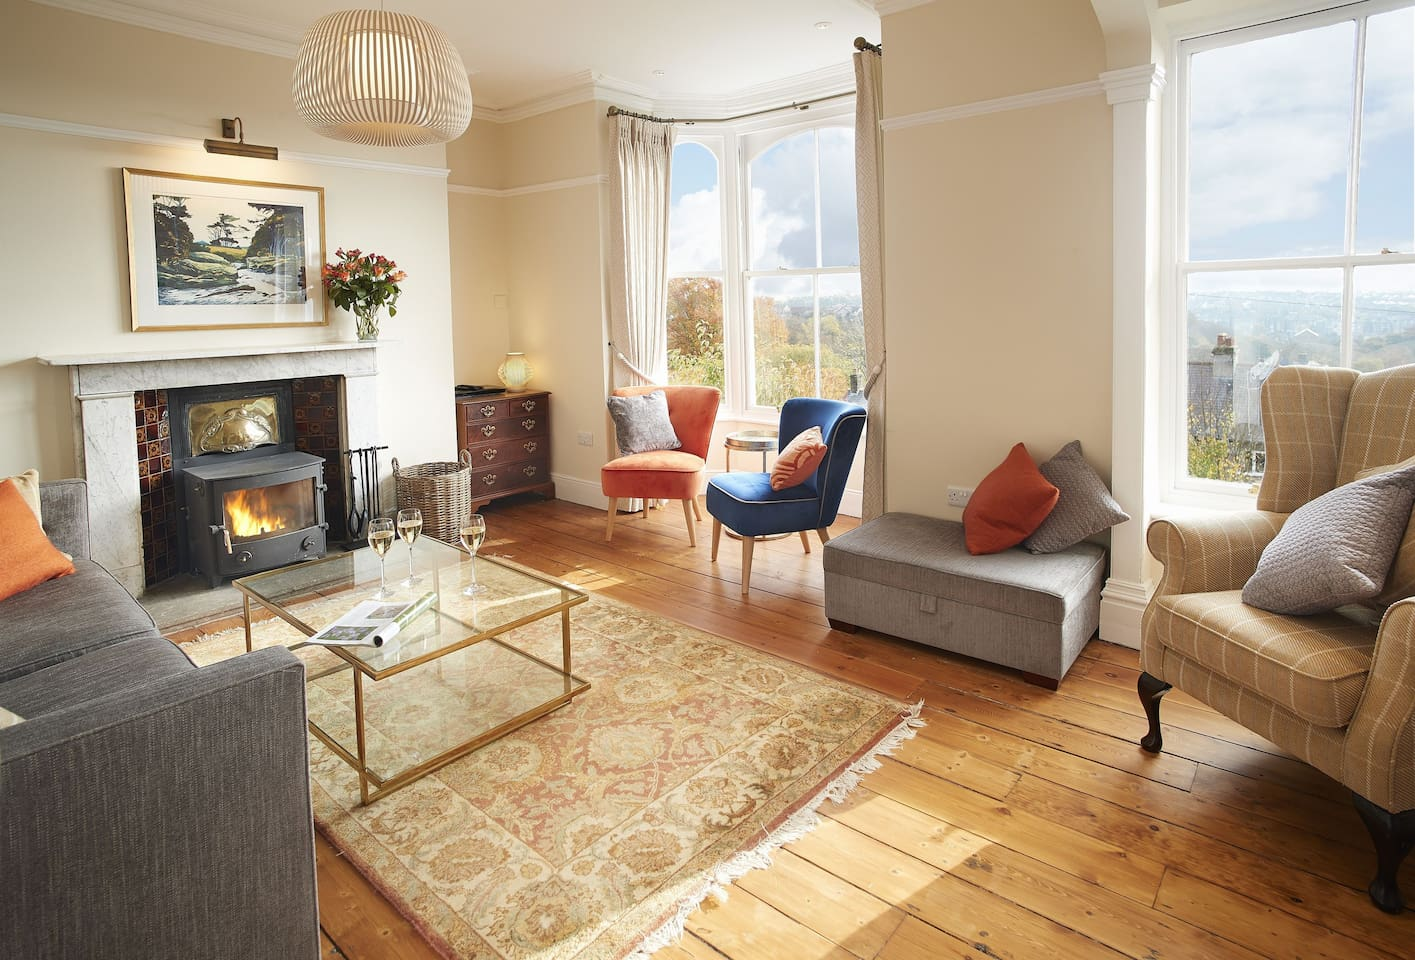 The sitting room boasts breathtaking views over Buxton and Derbyshire Peaks